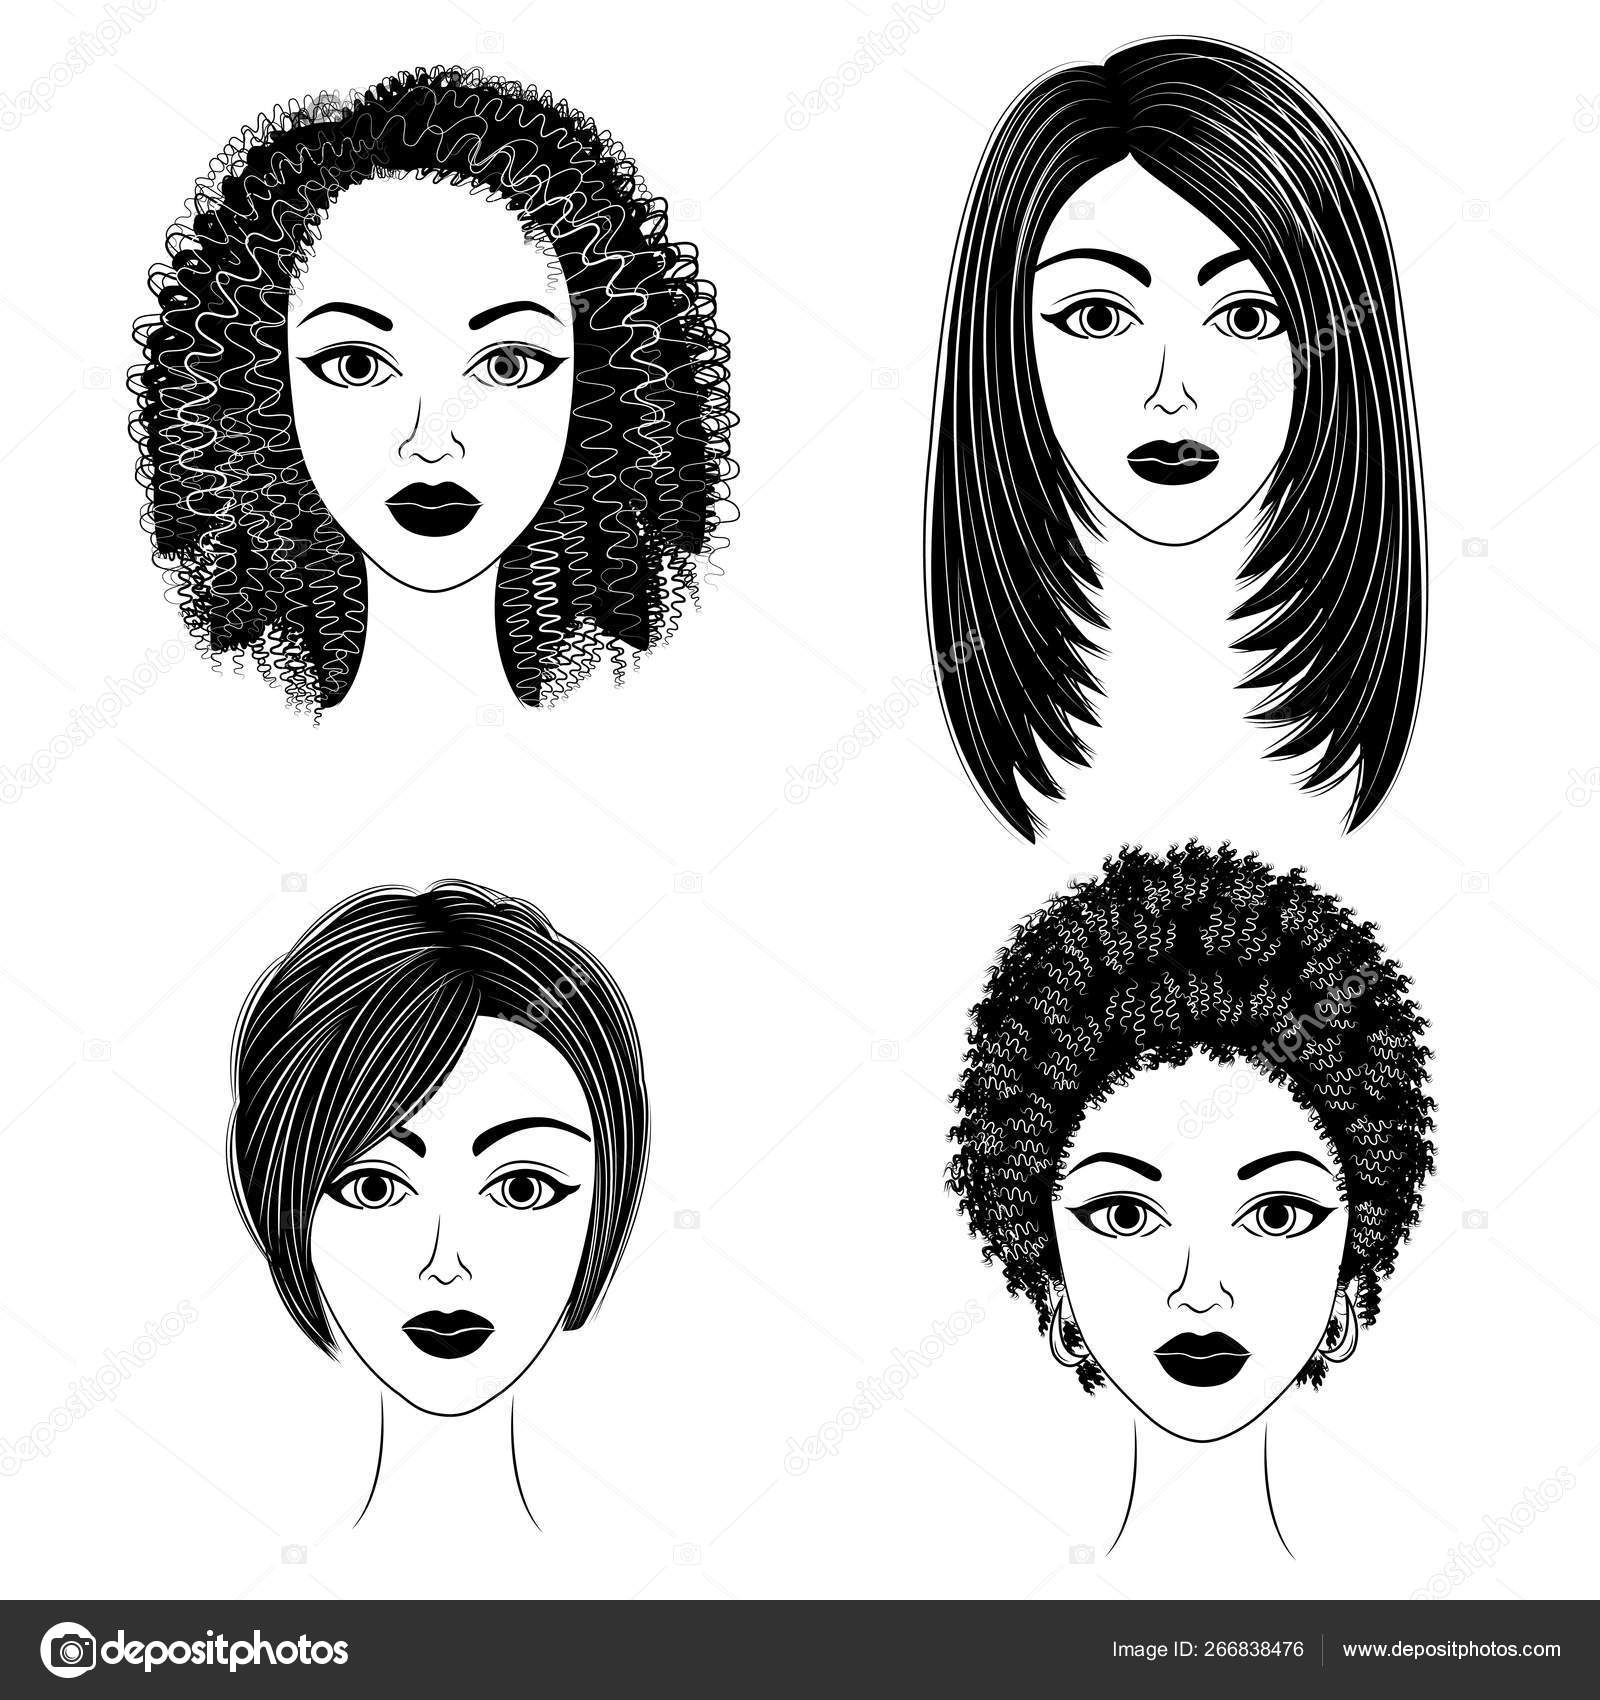 Silhouettes Of Heads Of The Lovely Ladies Collection Girls Show Hairstyles For Medium And Short Hair Women Are Beautiful And Stylish Vector Illustration Vector Image By C Pavlenko3014 Gmail Com Vector Stock